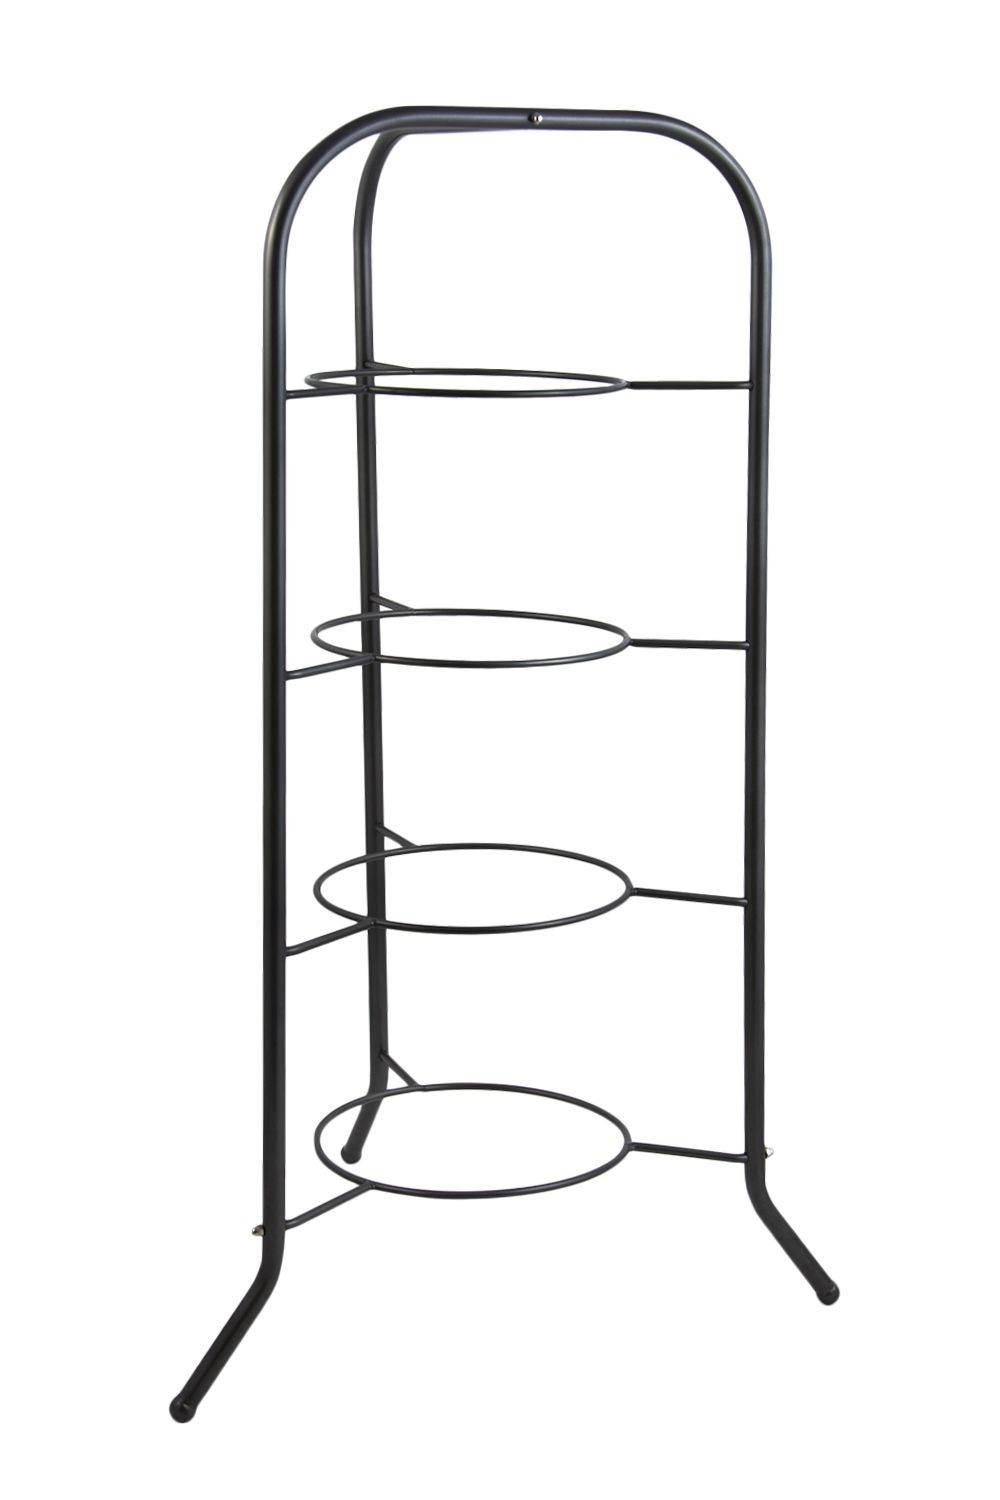 Magnificent Wire Display Stands Pictures Inspiration - Electrical ...